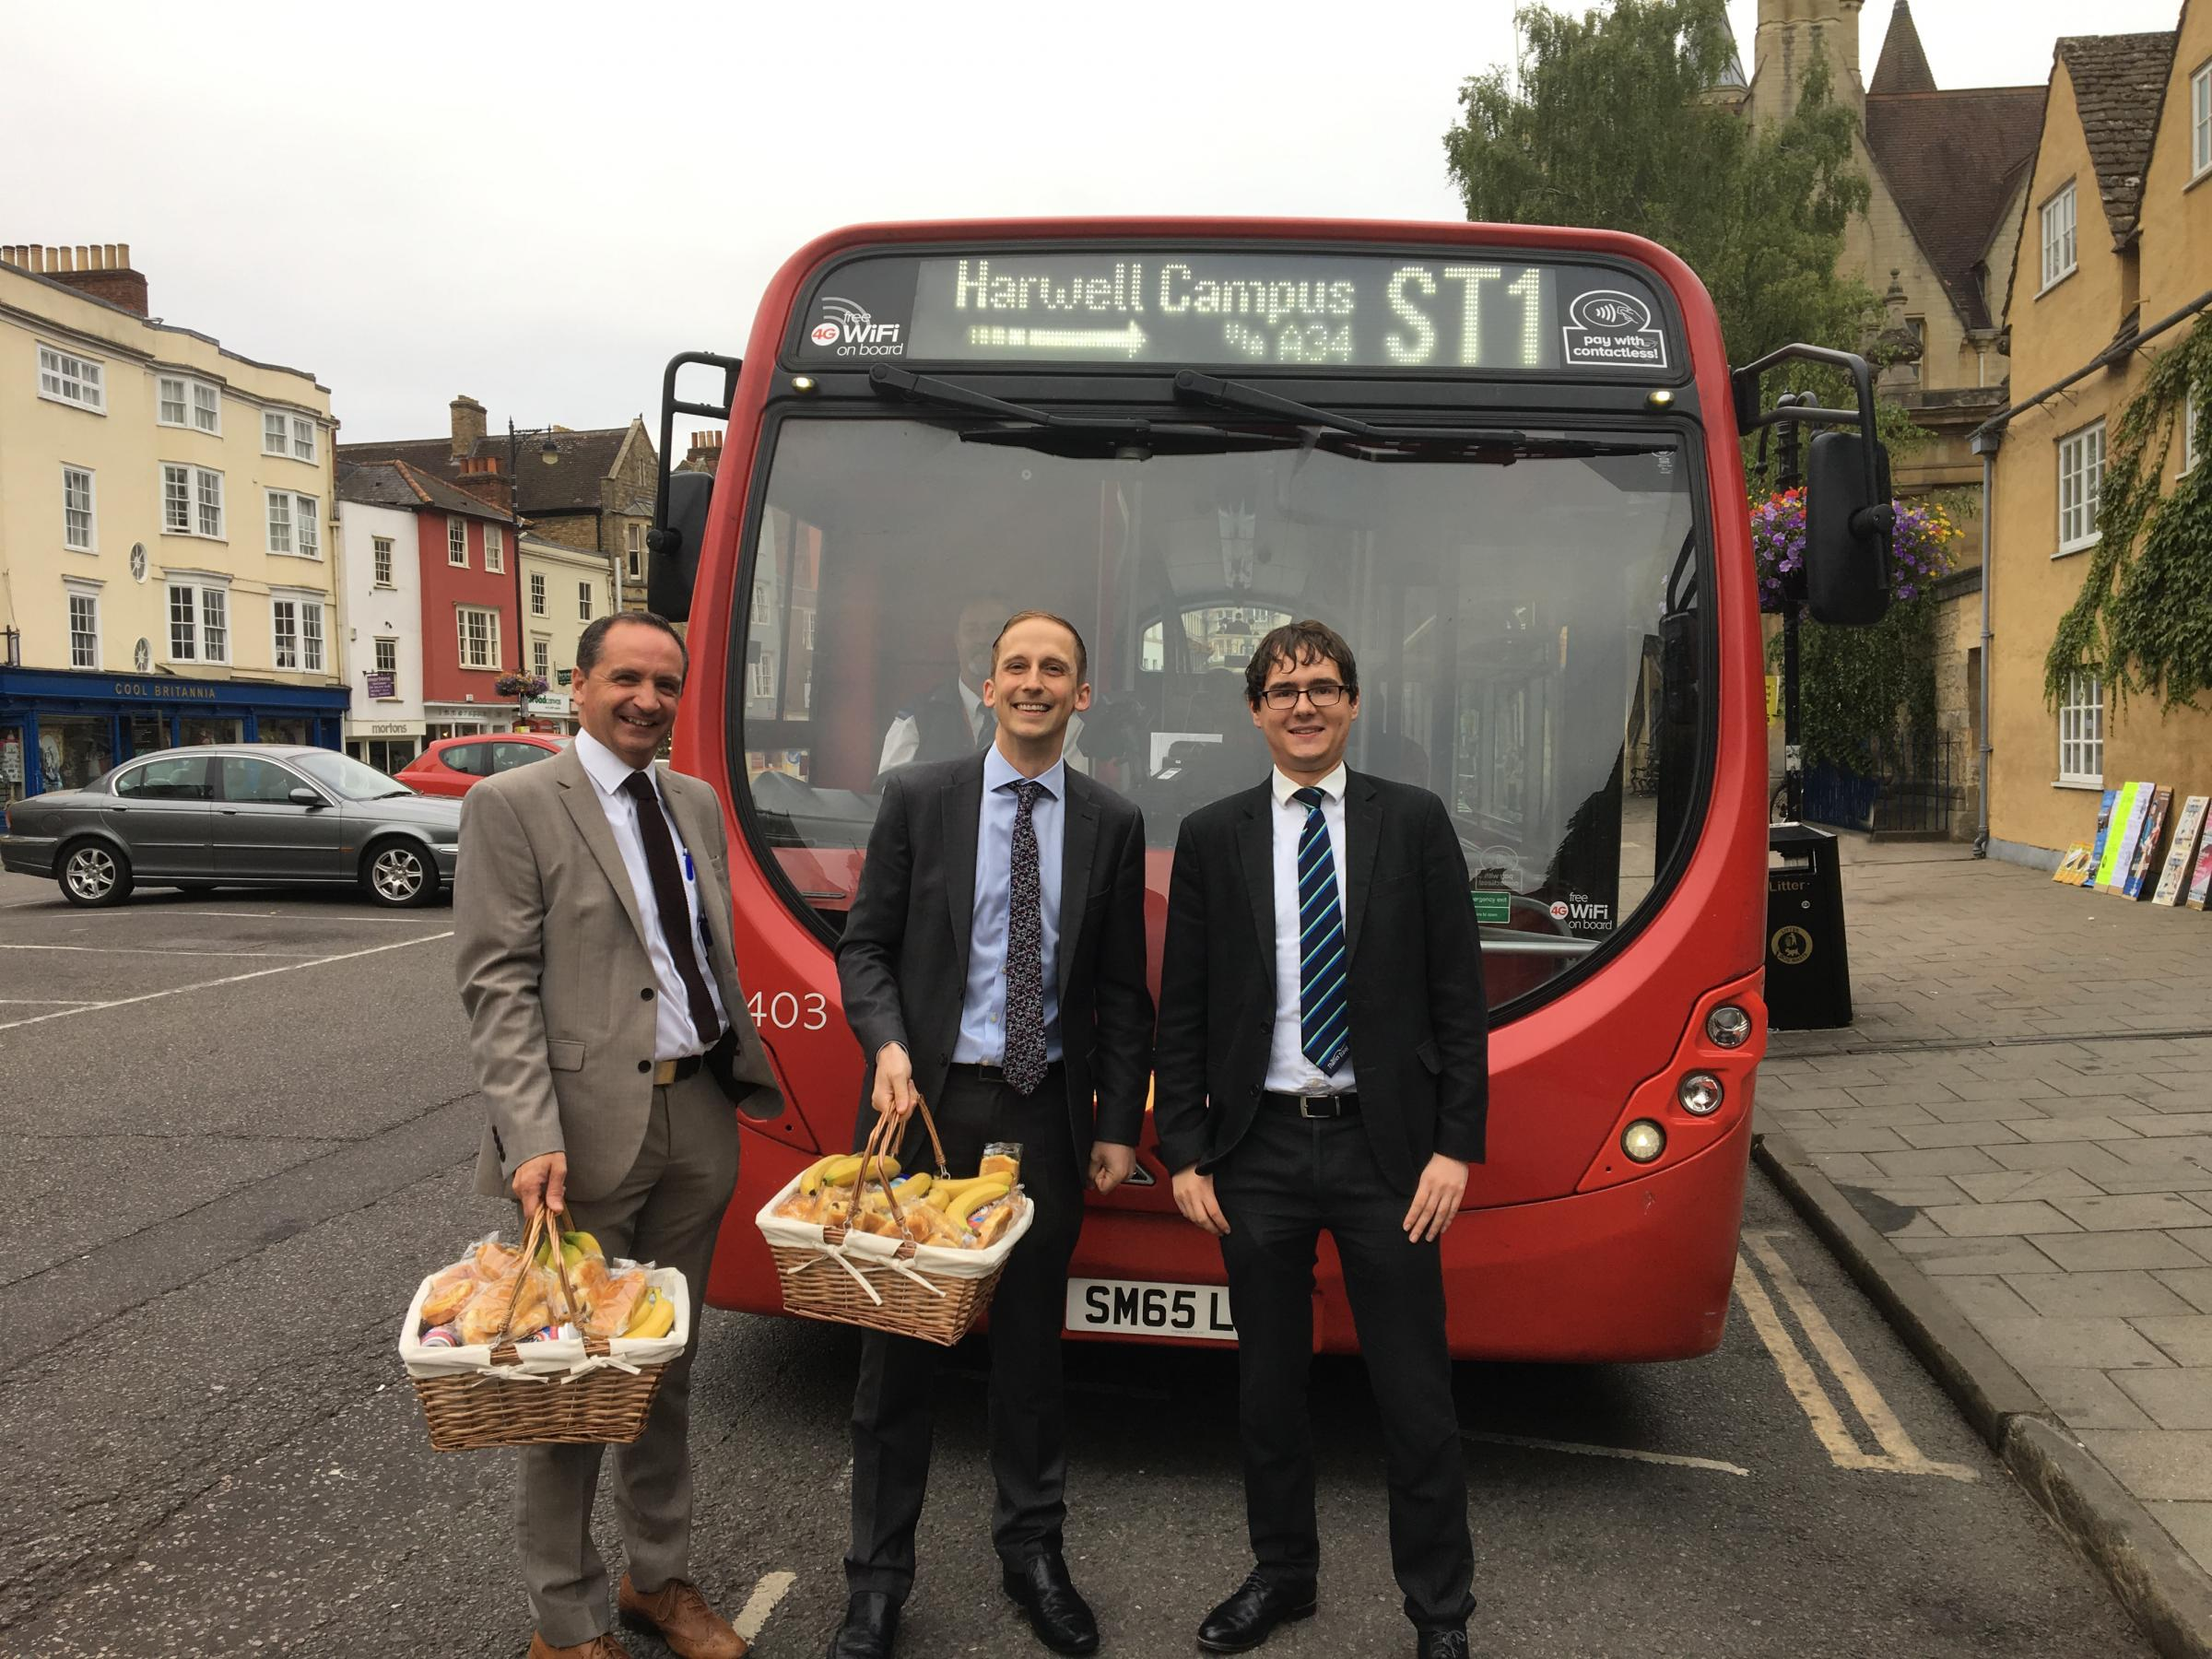 Bus service linking Oxford with Harwell science campus is launched